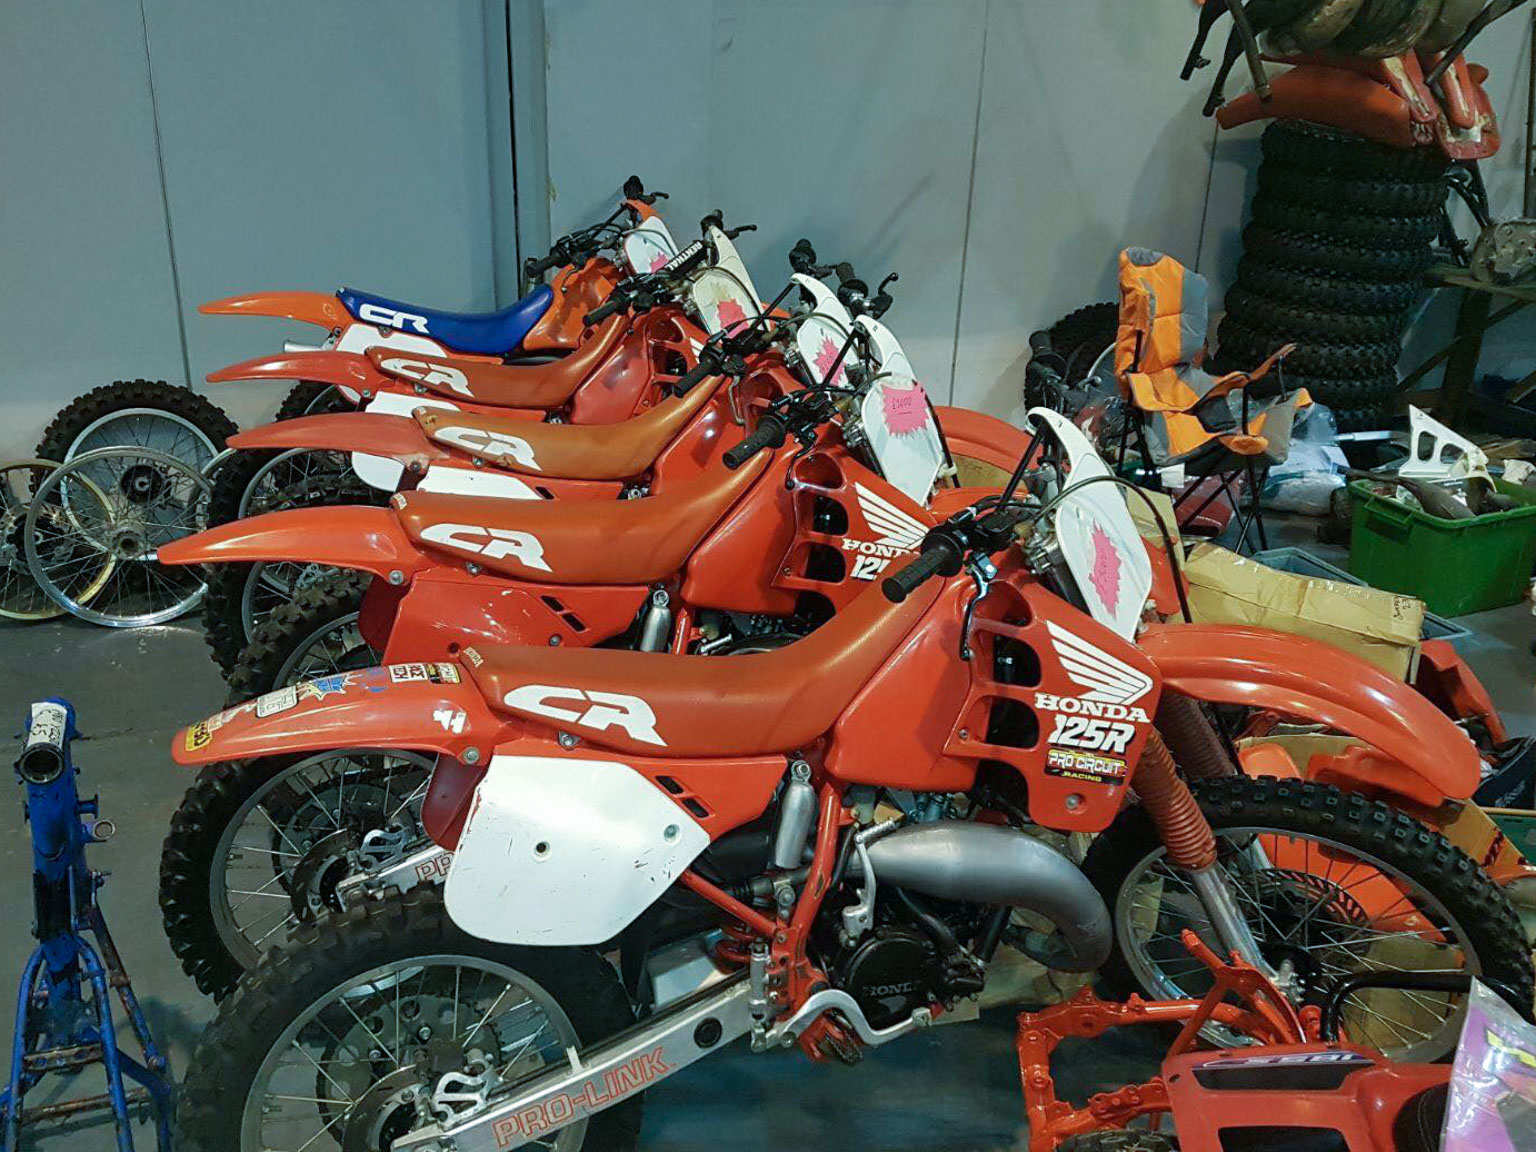 Lots of 1980s Honda CRs for sale